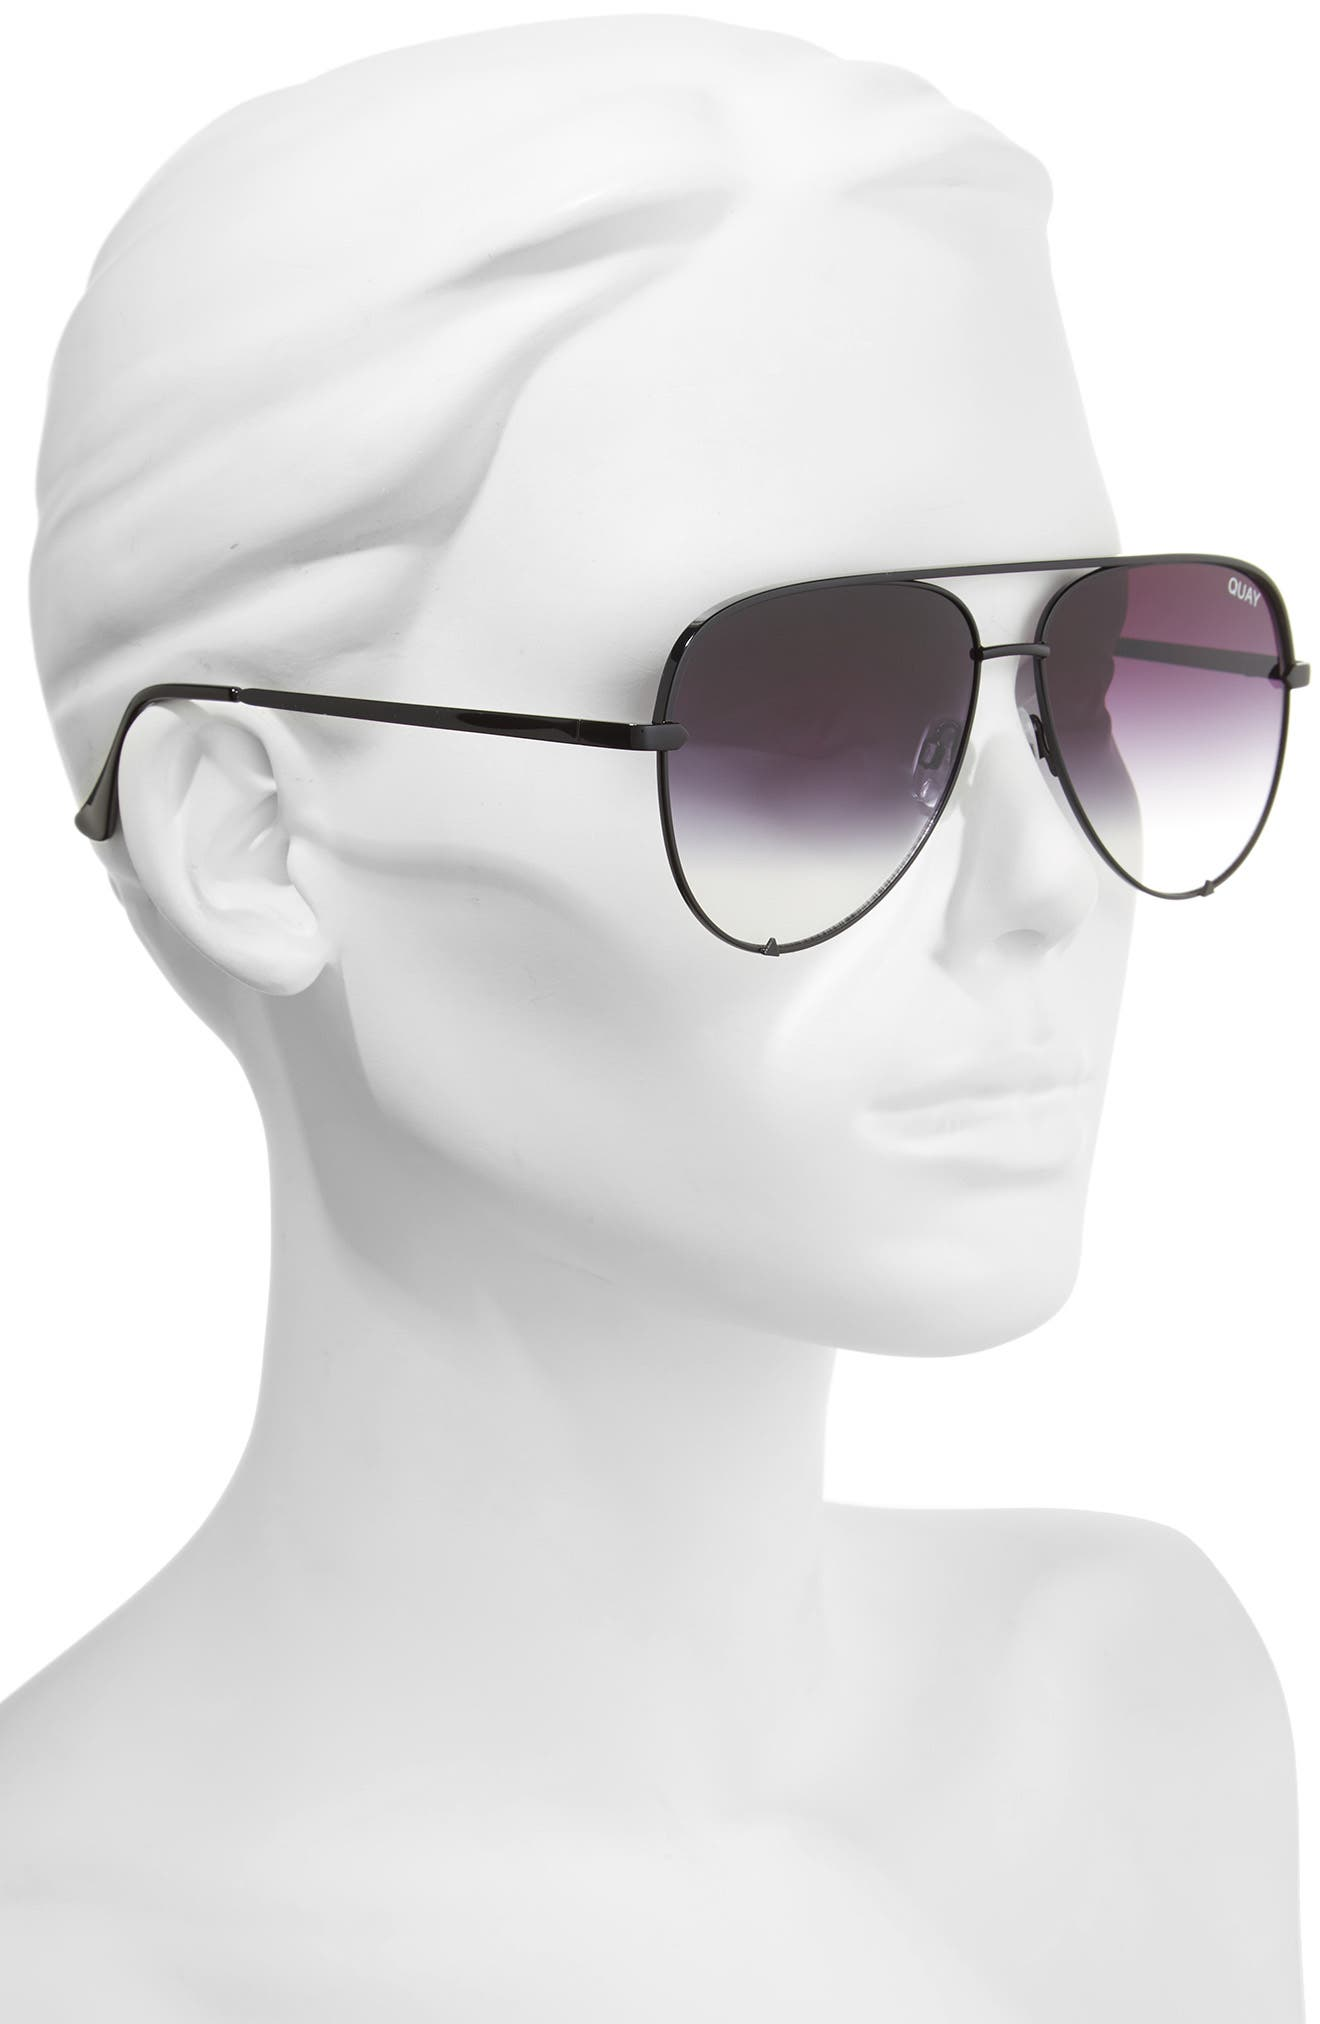 QUAY AUSTRALIA, x Desi Perkins High Key 62mm Aviator Sunglasses, Alternate thumbnail 2, color, BLACK FADE TO CLEAR